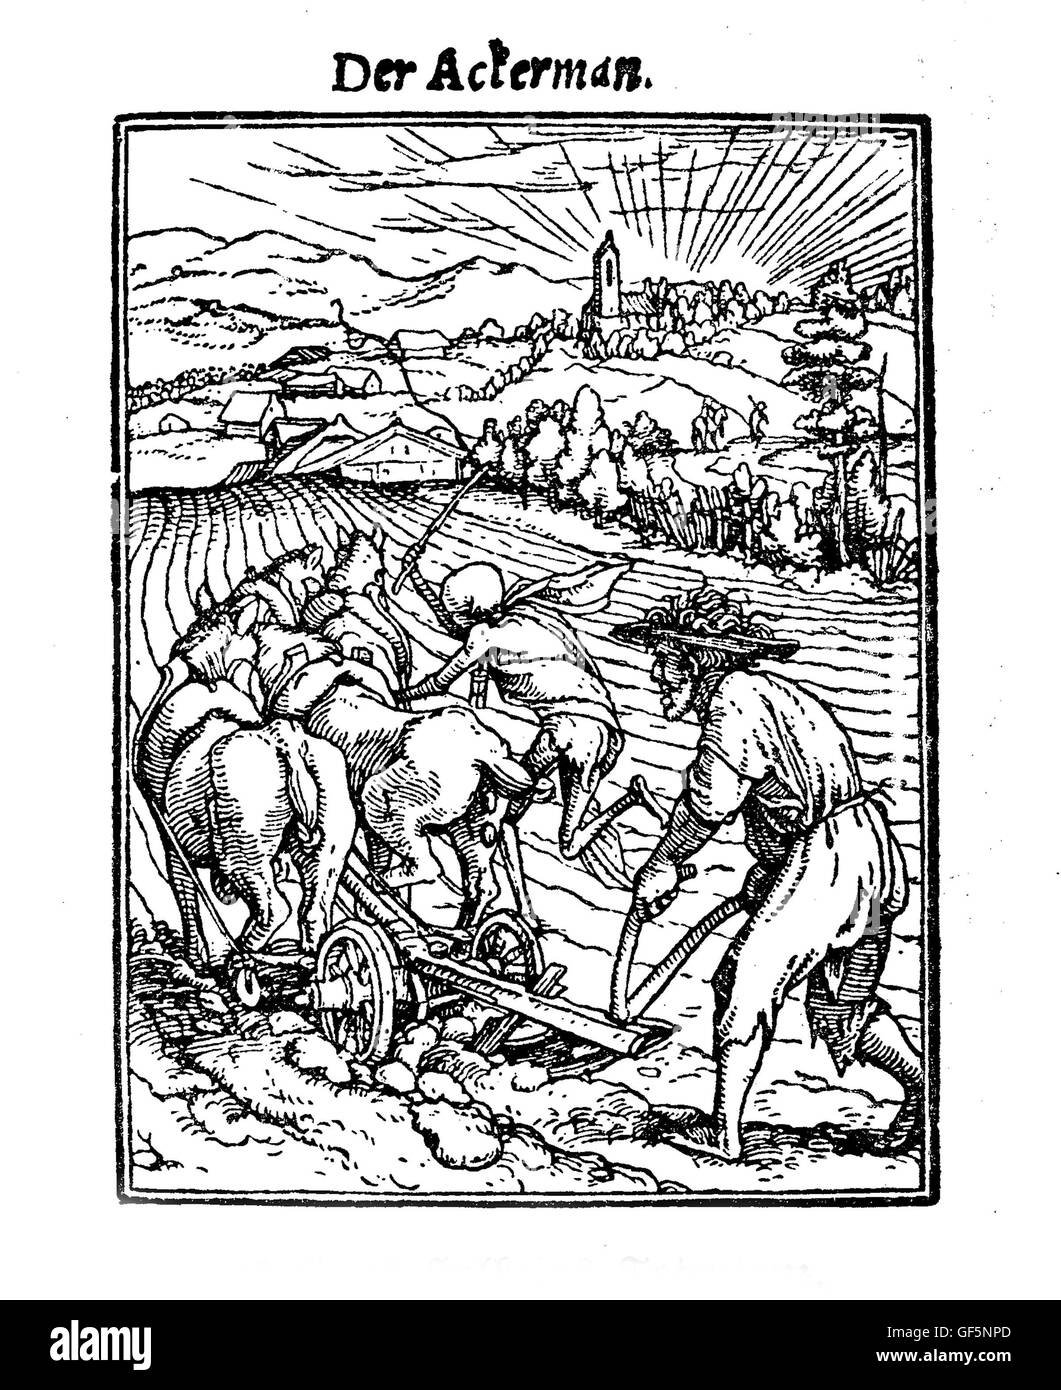 XV century, Death as the plower, illustration inspired to Hans Holbein's 'Totentanz' ('La danse - Stock Image